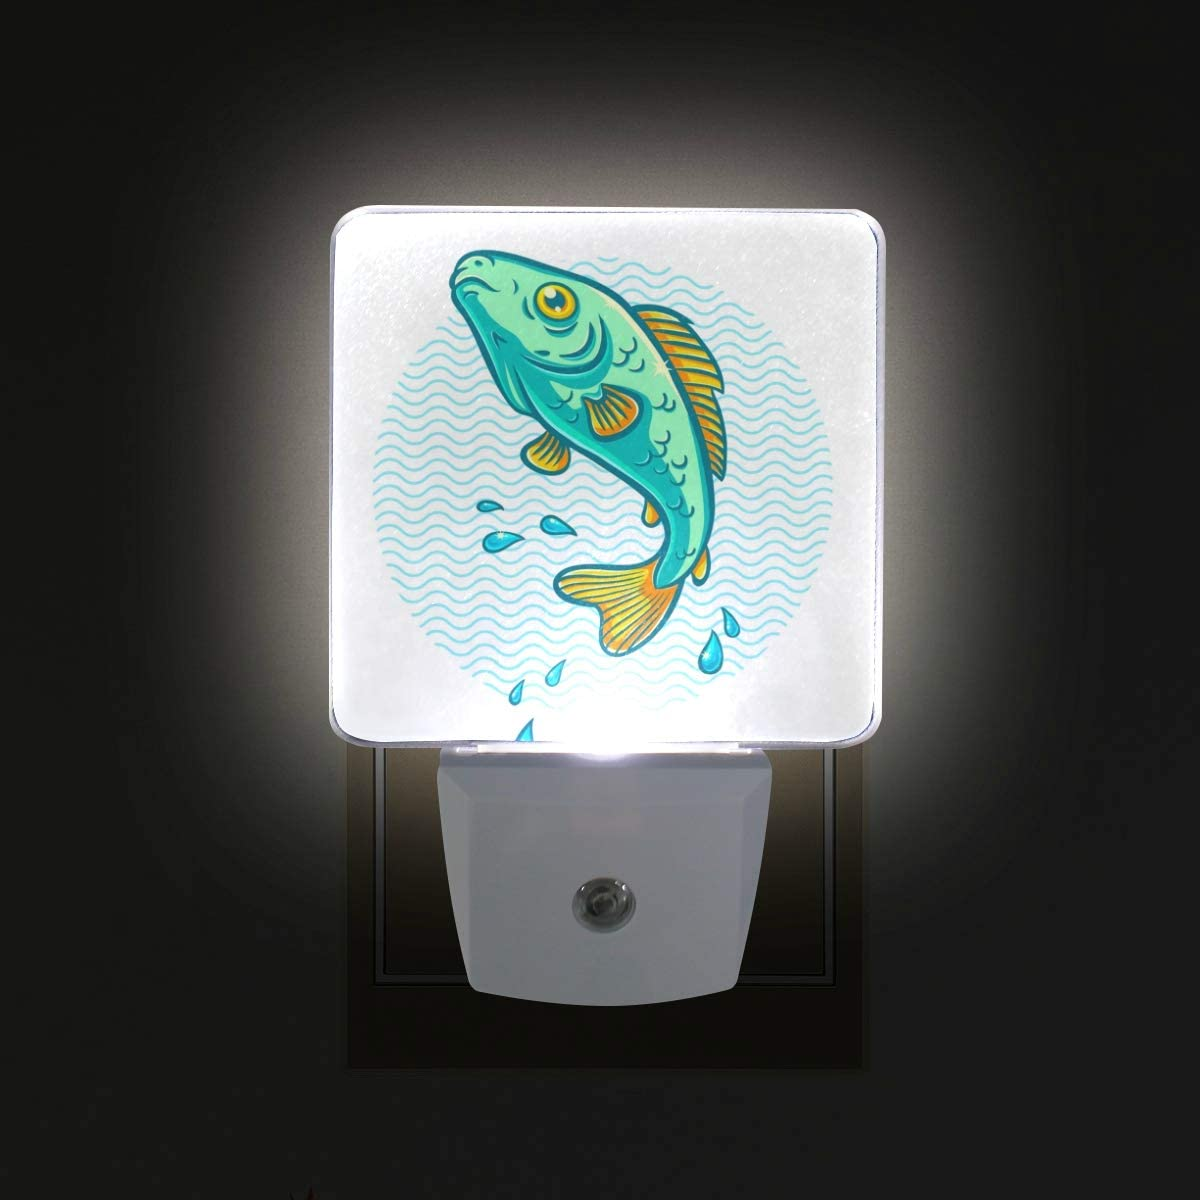 Wave Fish Water LED Night Lights with Auto Dusk to Dawn Sensor, Plug-in Warm White Wall Lights for Kids Room